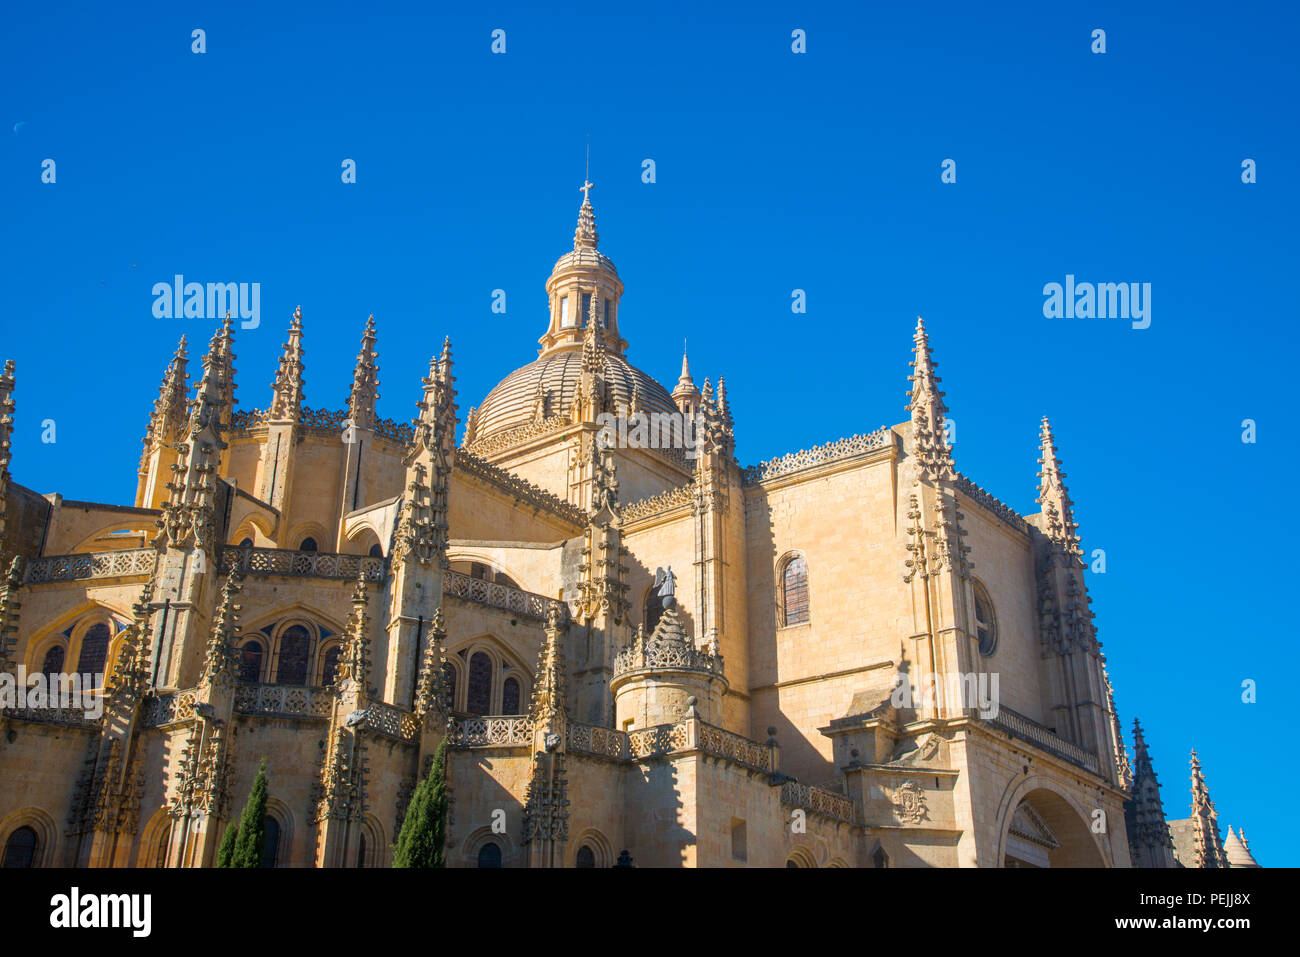 Apse of the Gothic cathedral. Segovia, Spain. - Stock Image